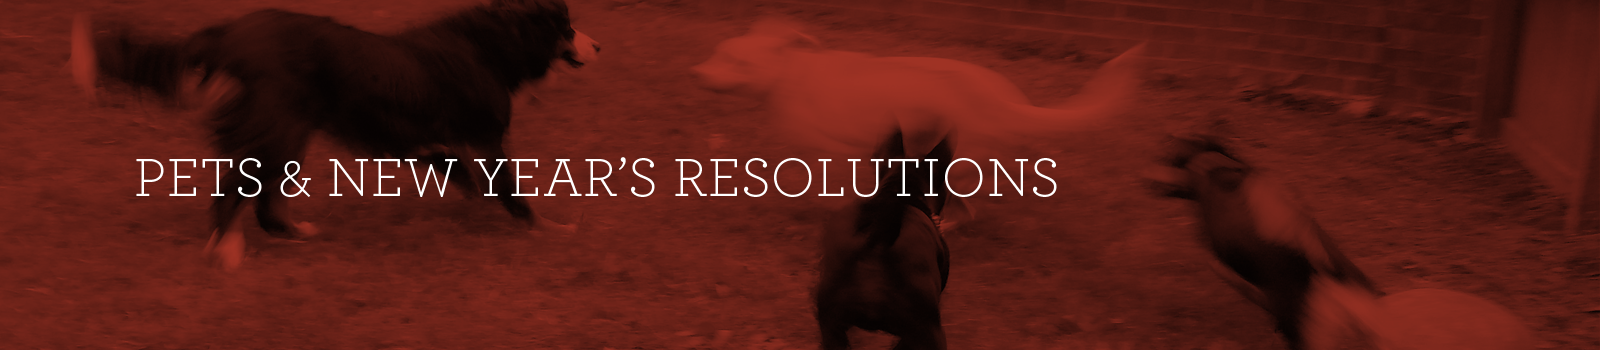 Our Pets Have New Year's Resolutions, Too!